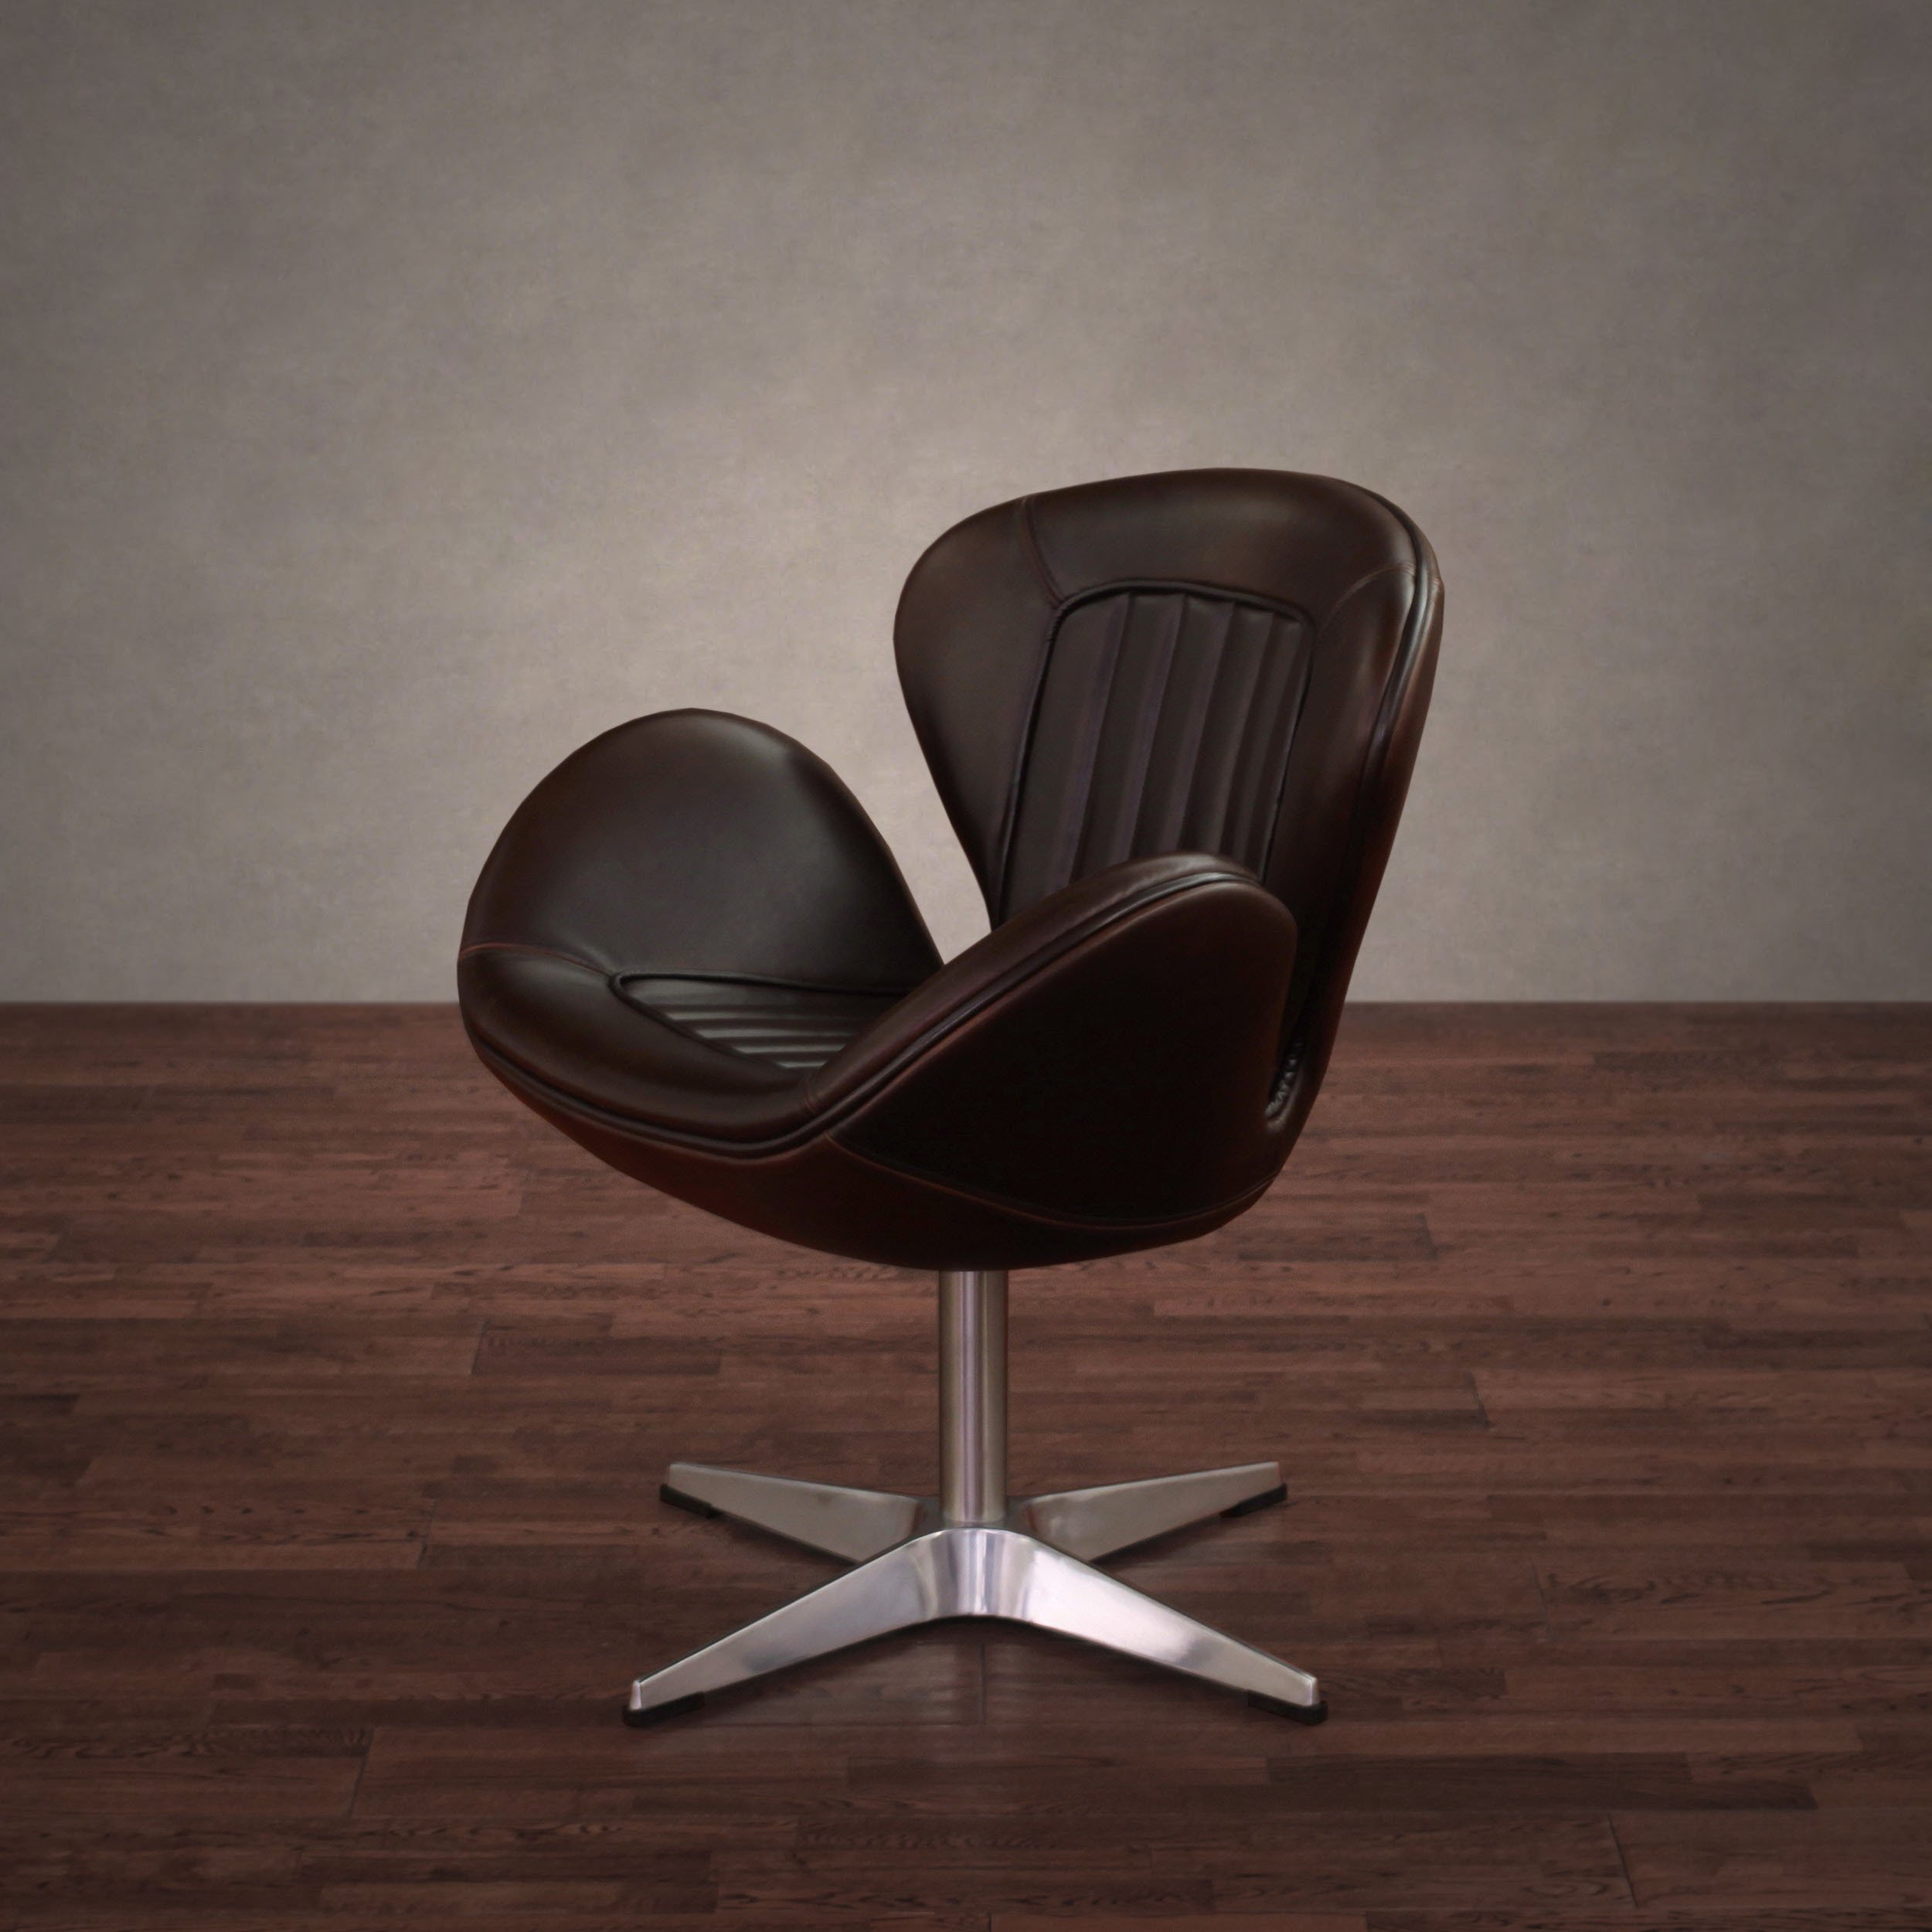 Shop Amelia Vintage Tobacco Leather Swivel Chair – Free Shipping With Regard To Swivel Tobacco Leather Chairs (View 11 of 25)